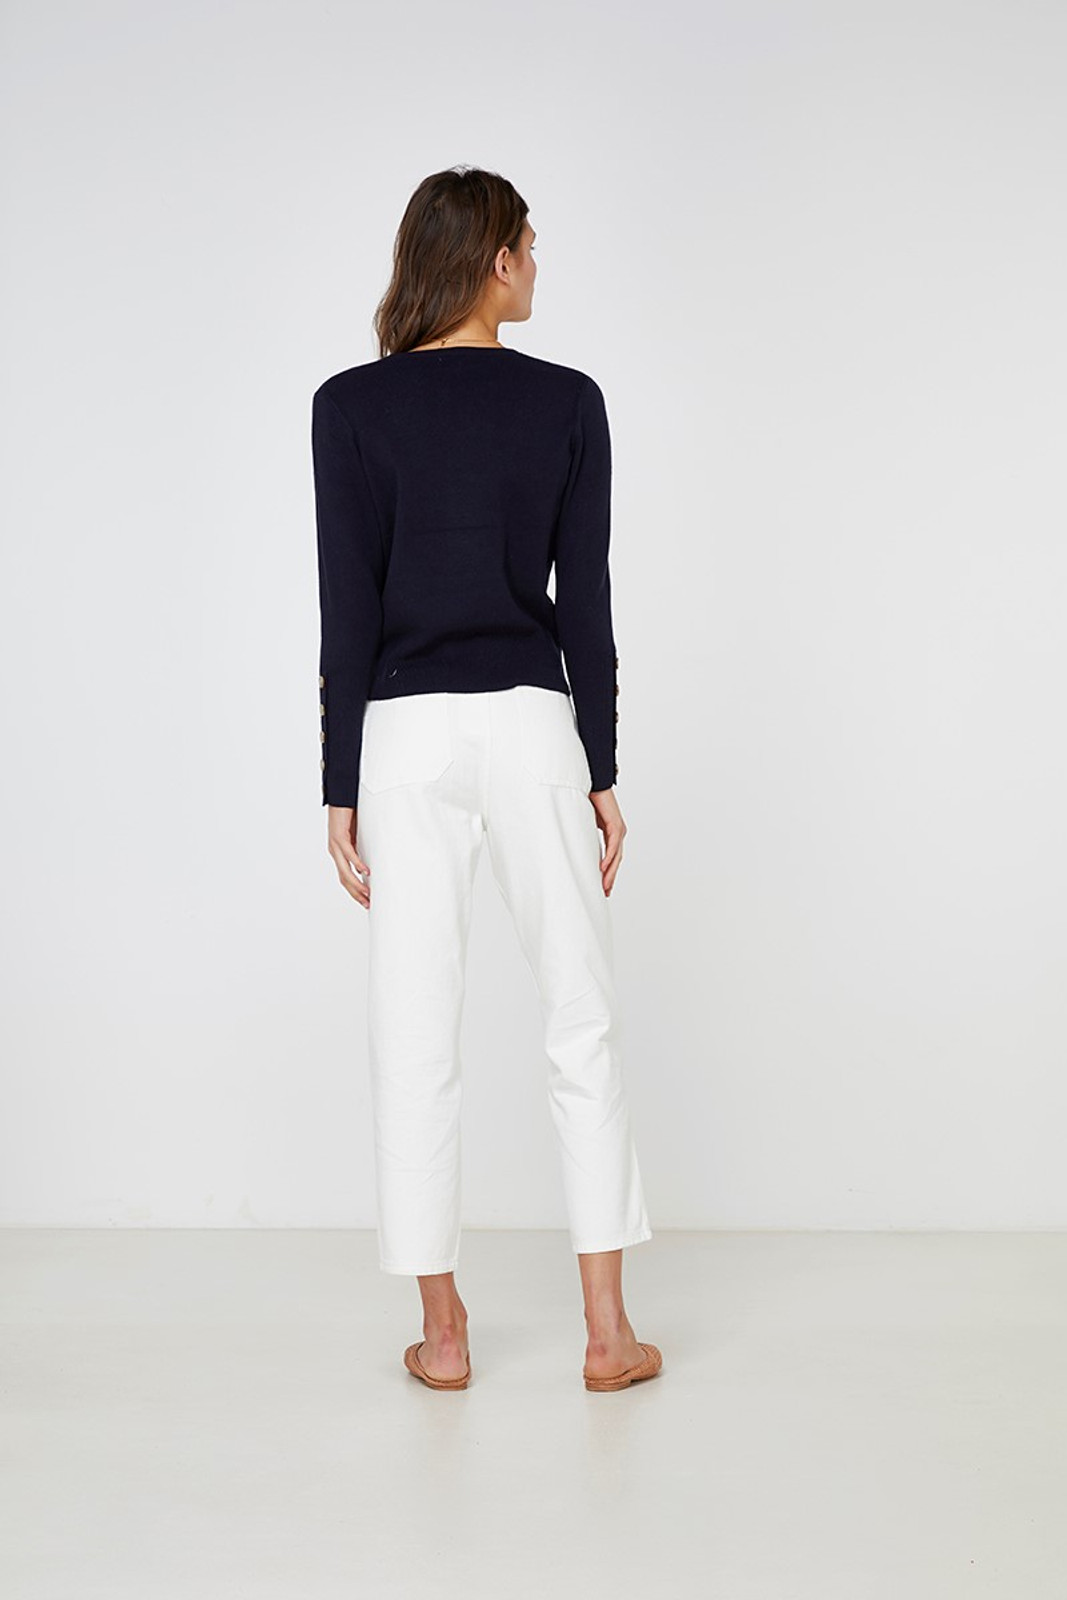 Elka Collective Mateo Knit Navy  8